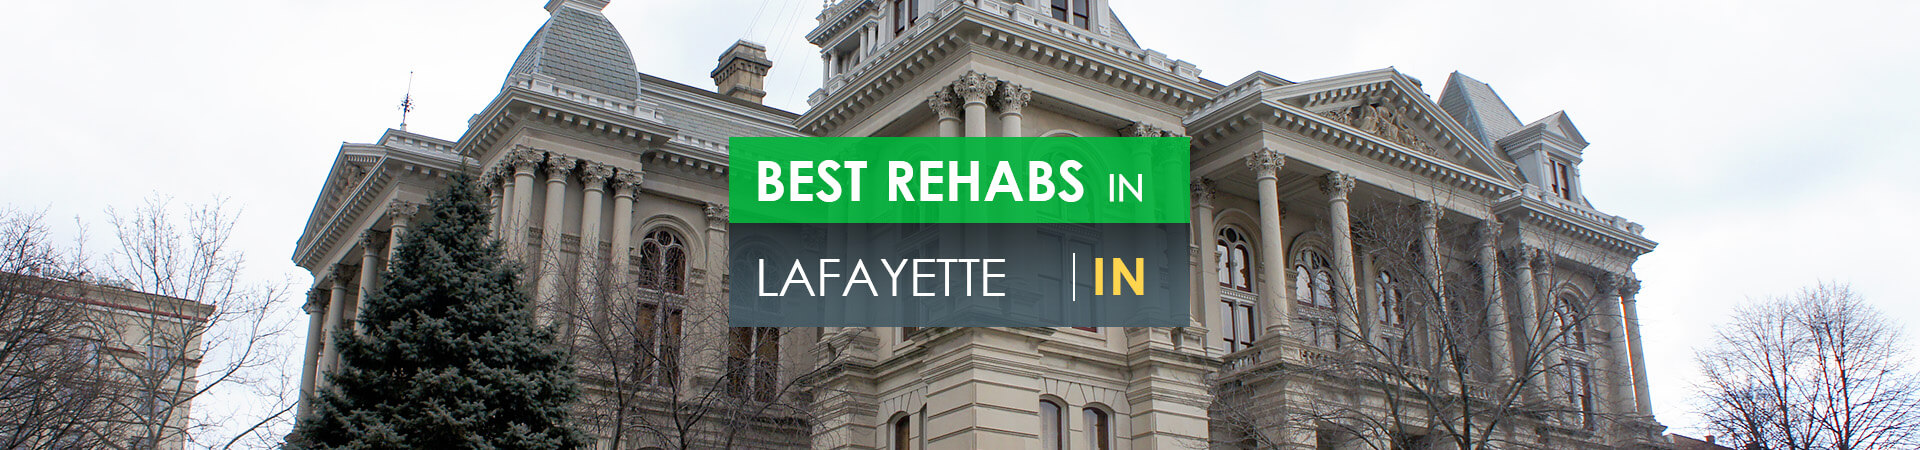 Best rehabs in Lafayette, IN